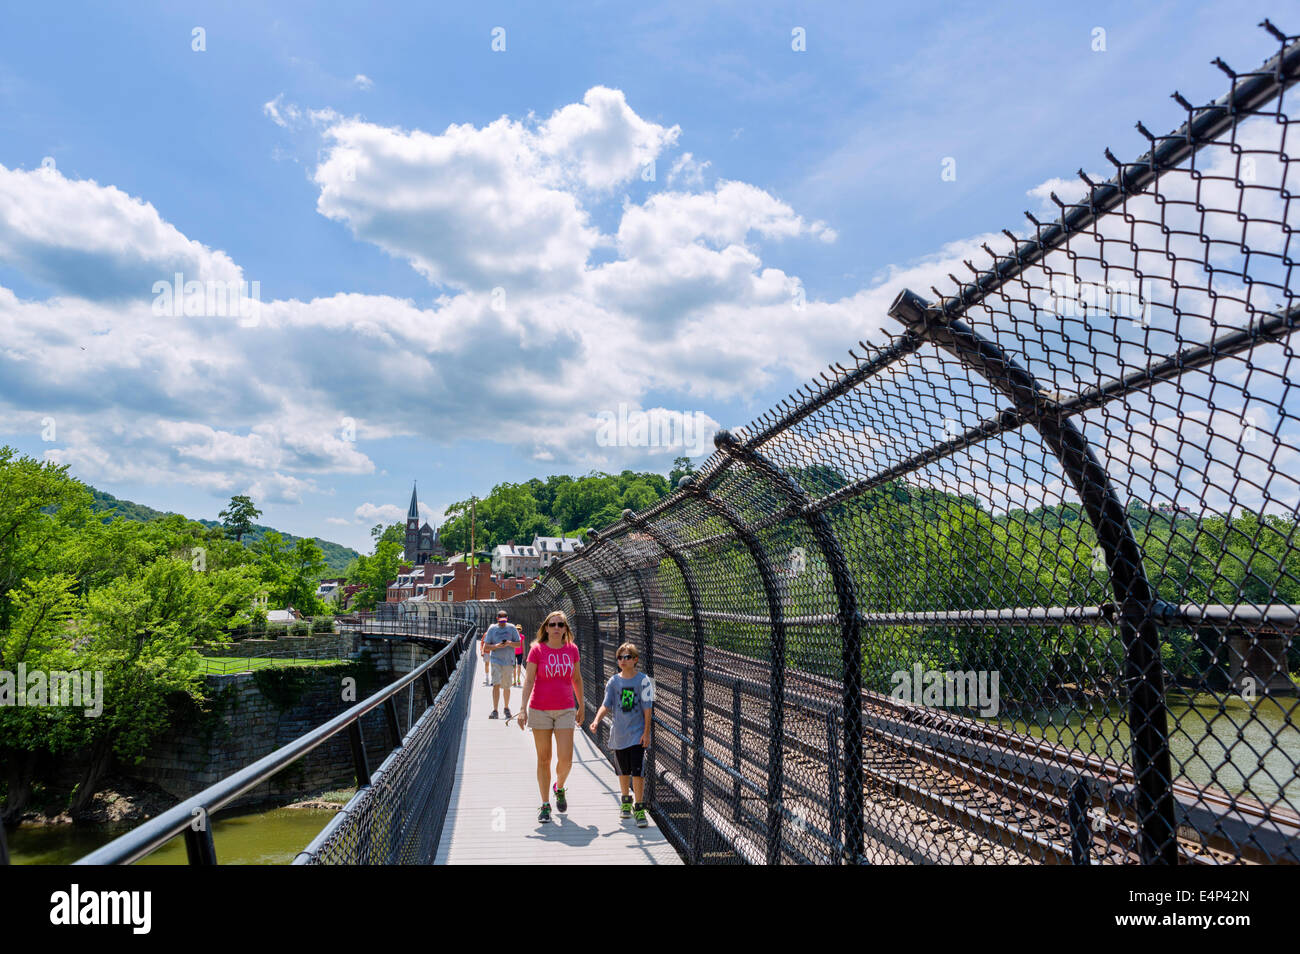 Appalachian Trail footbridge across Potomac River at Harpers Ferry looking towards the town, West Virginia, USA - Stock Image